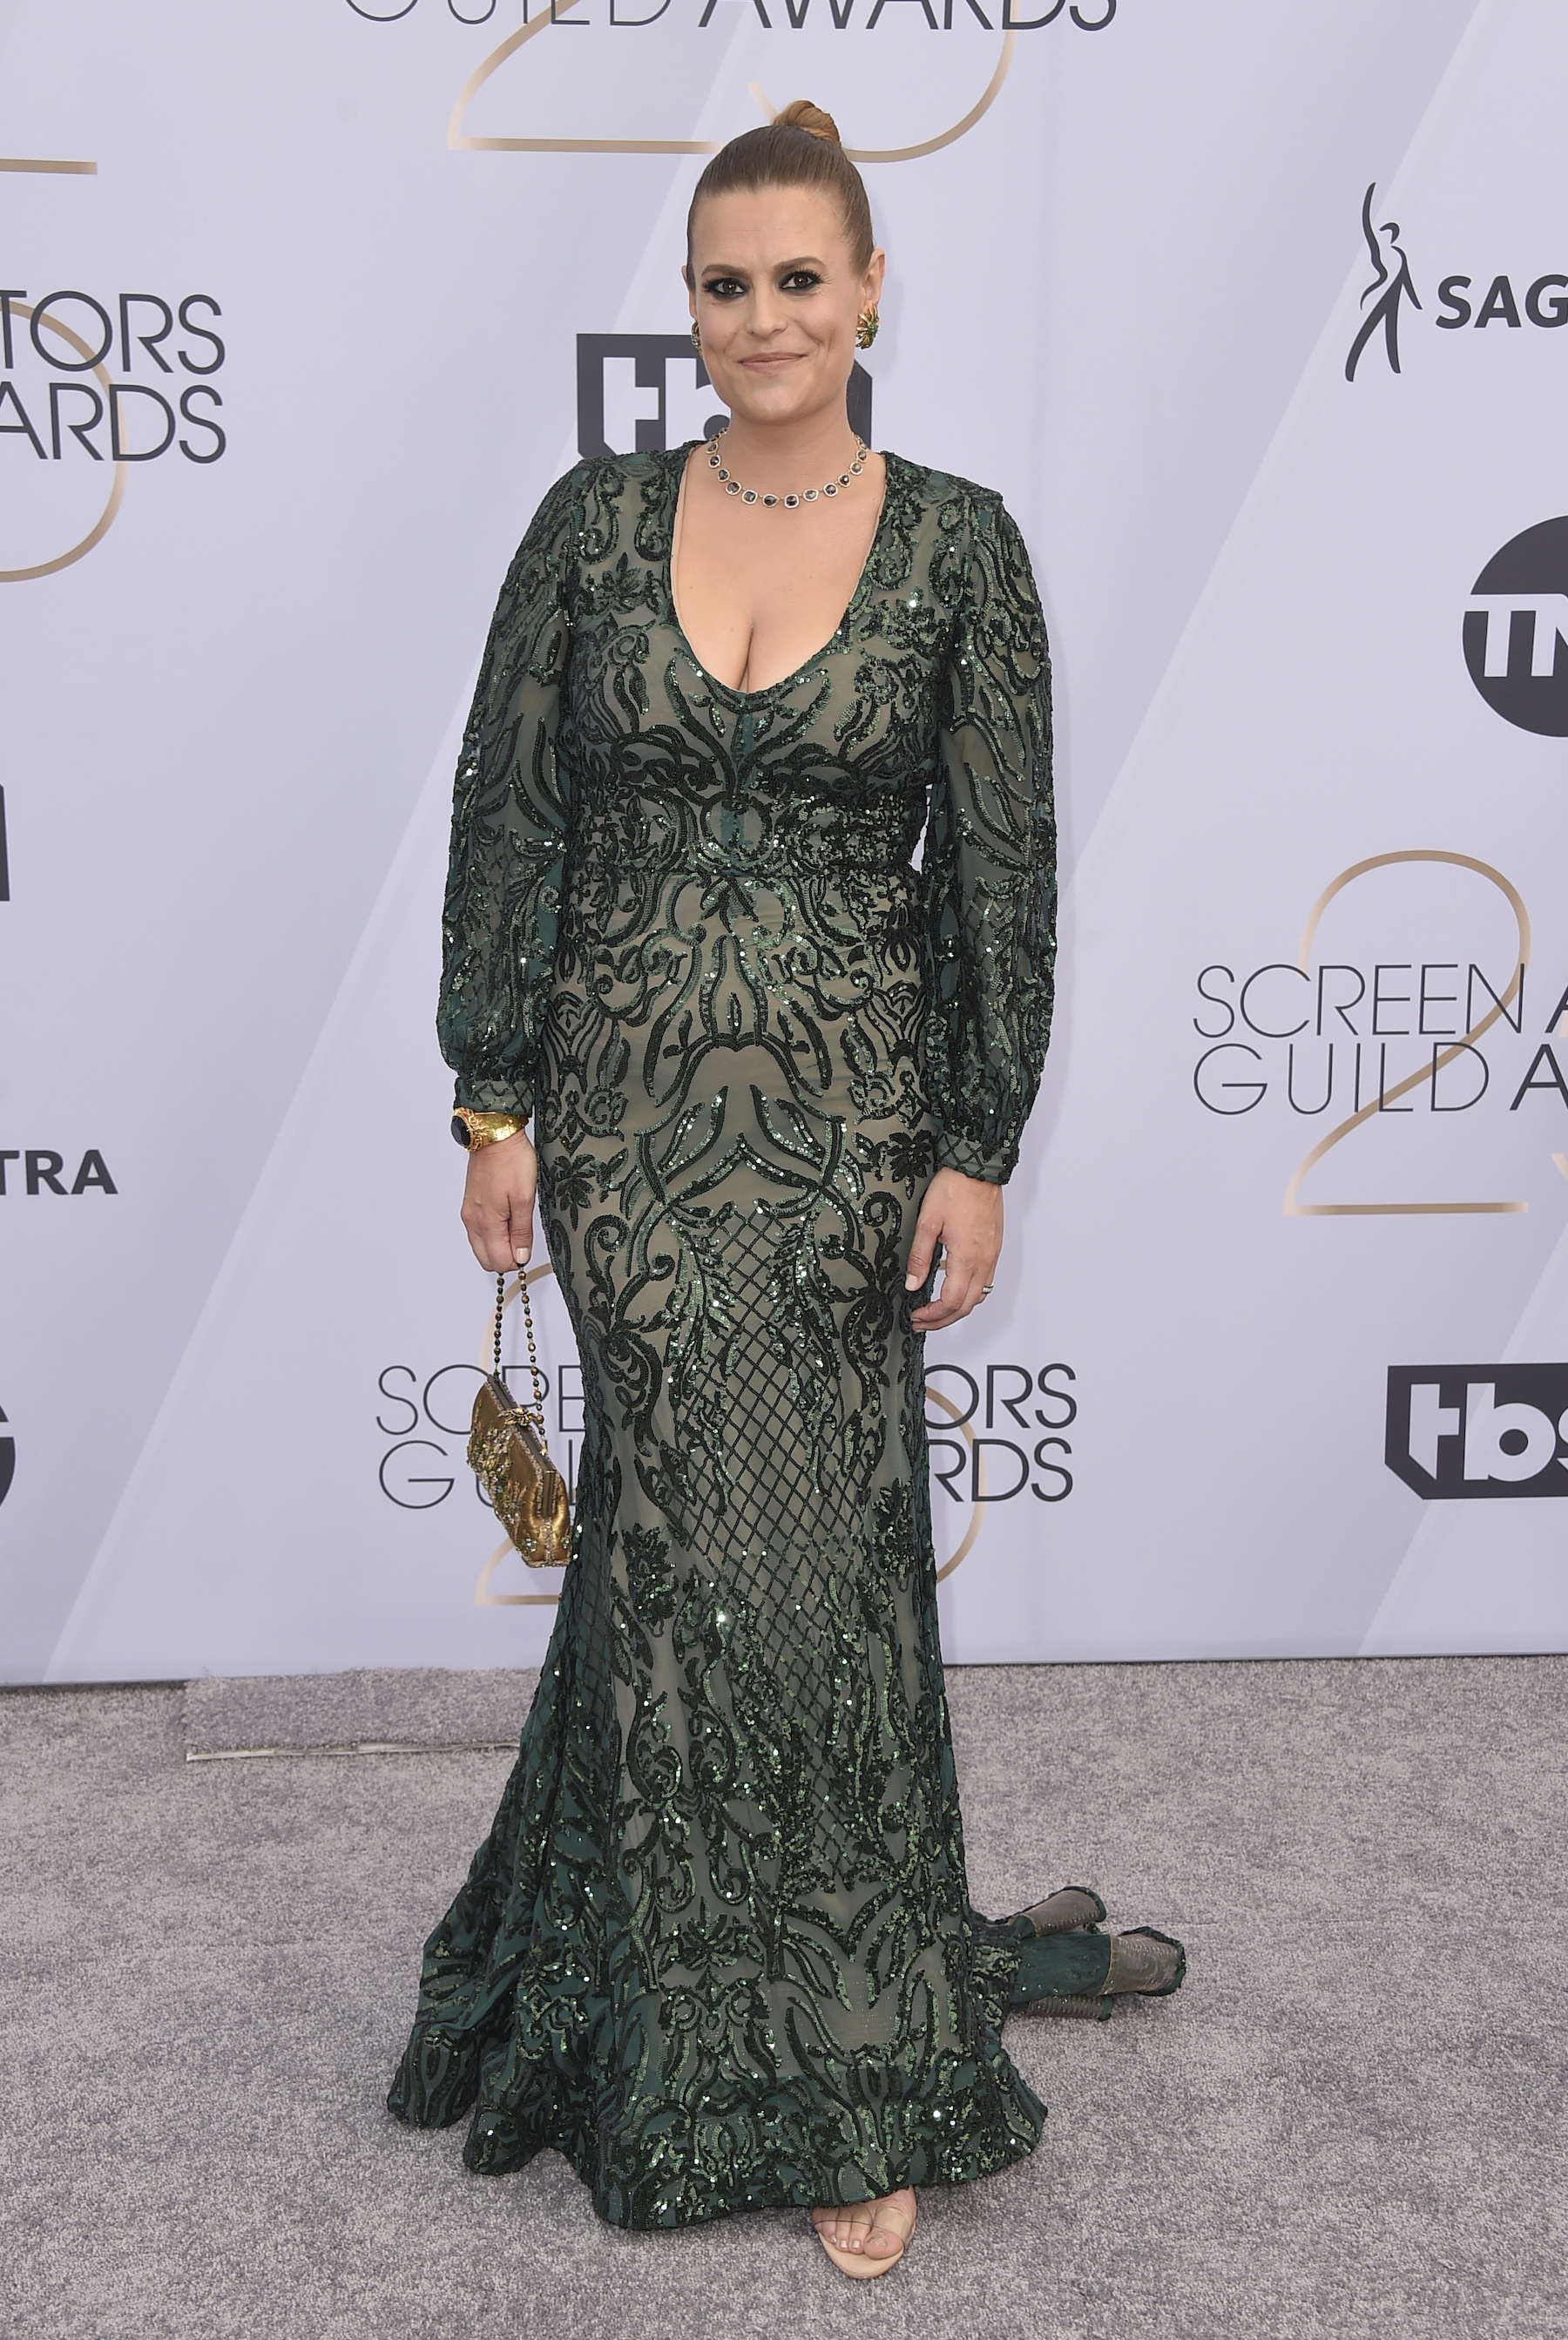 "<div class=""meta image-caption""><div class=""origin-logo origin-image ap""><span>AP</span></div><span class=""caption-text"">Marianna Palka arrives at the 25th annual Screen Actors Guild Awards at the Shrine Auditorium & Expo Hall on Sunday, Jan. 27, 2019, in Los Angeles. (Jordan Strauss/Invision/AP)</span></div>"